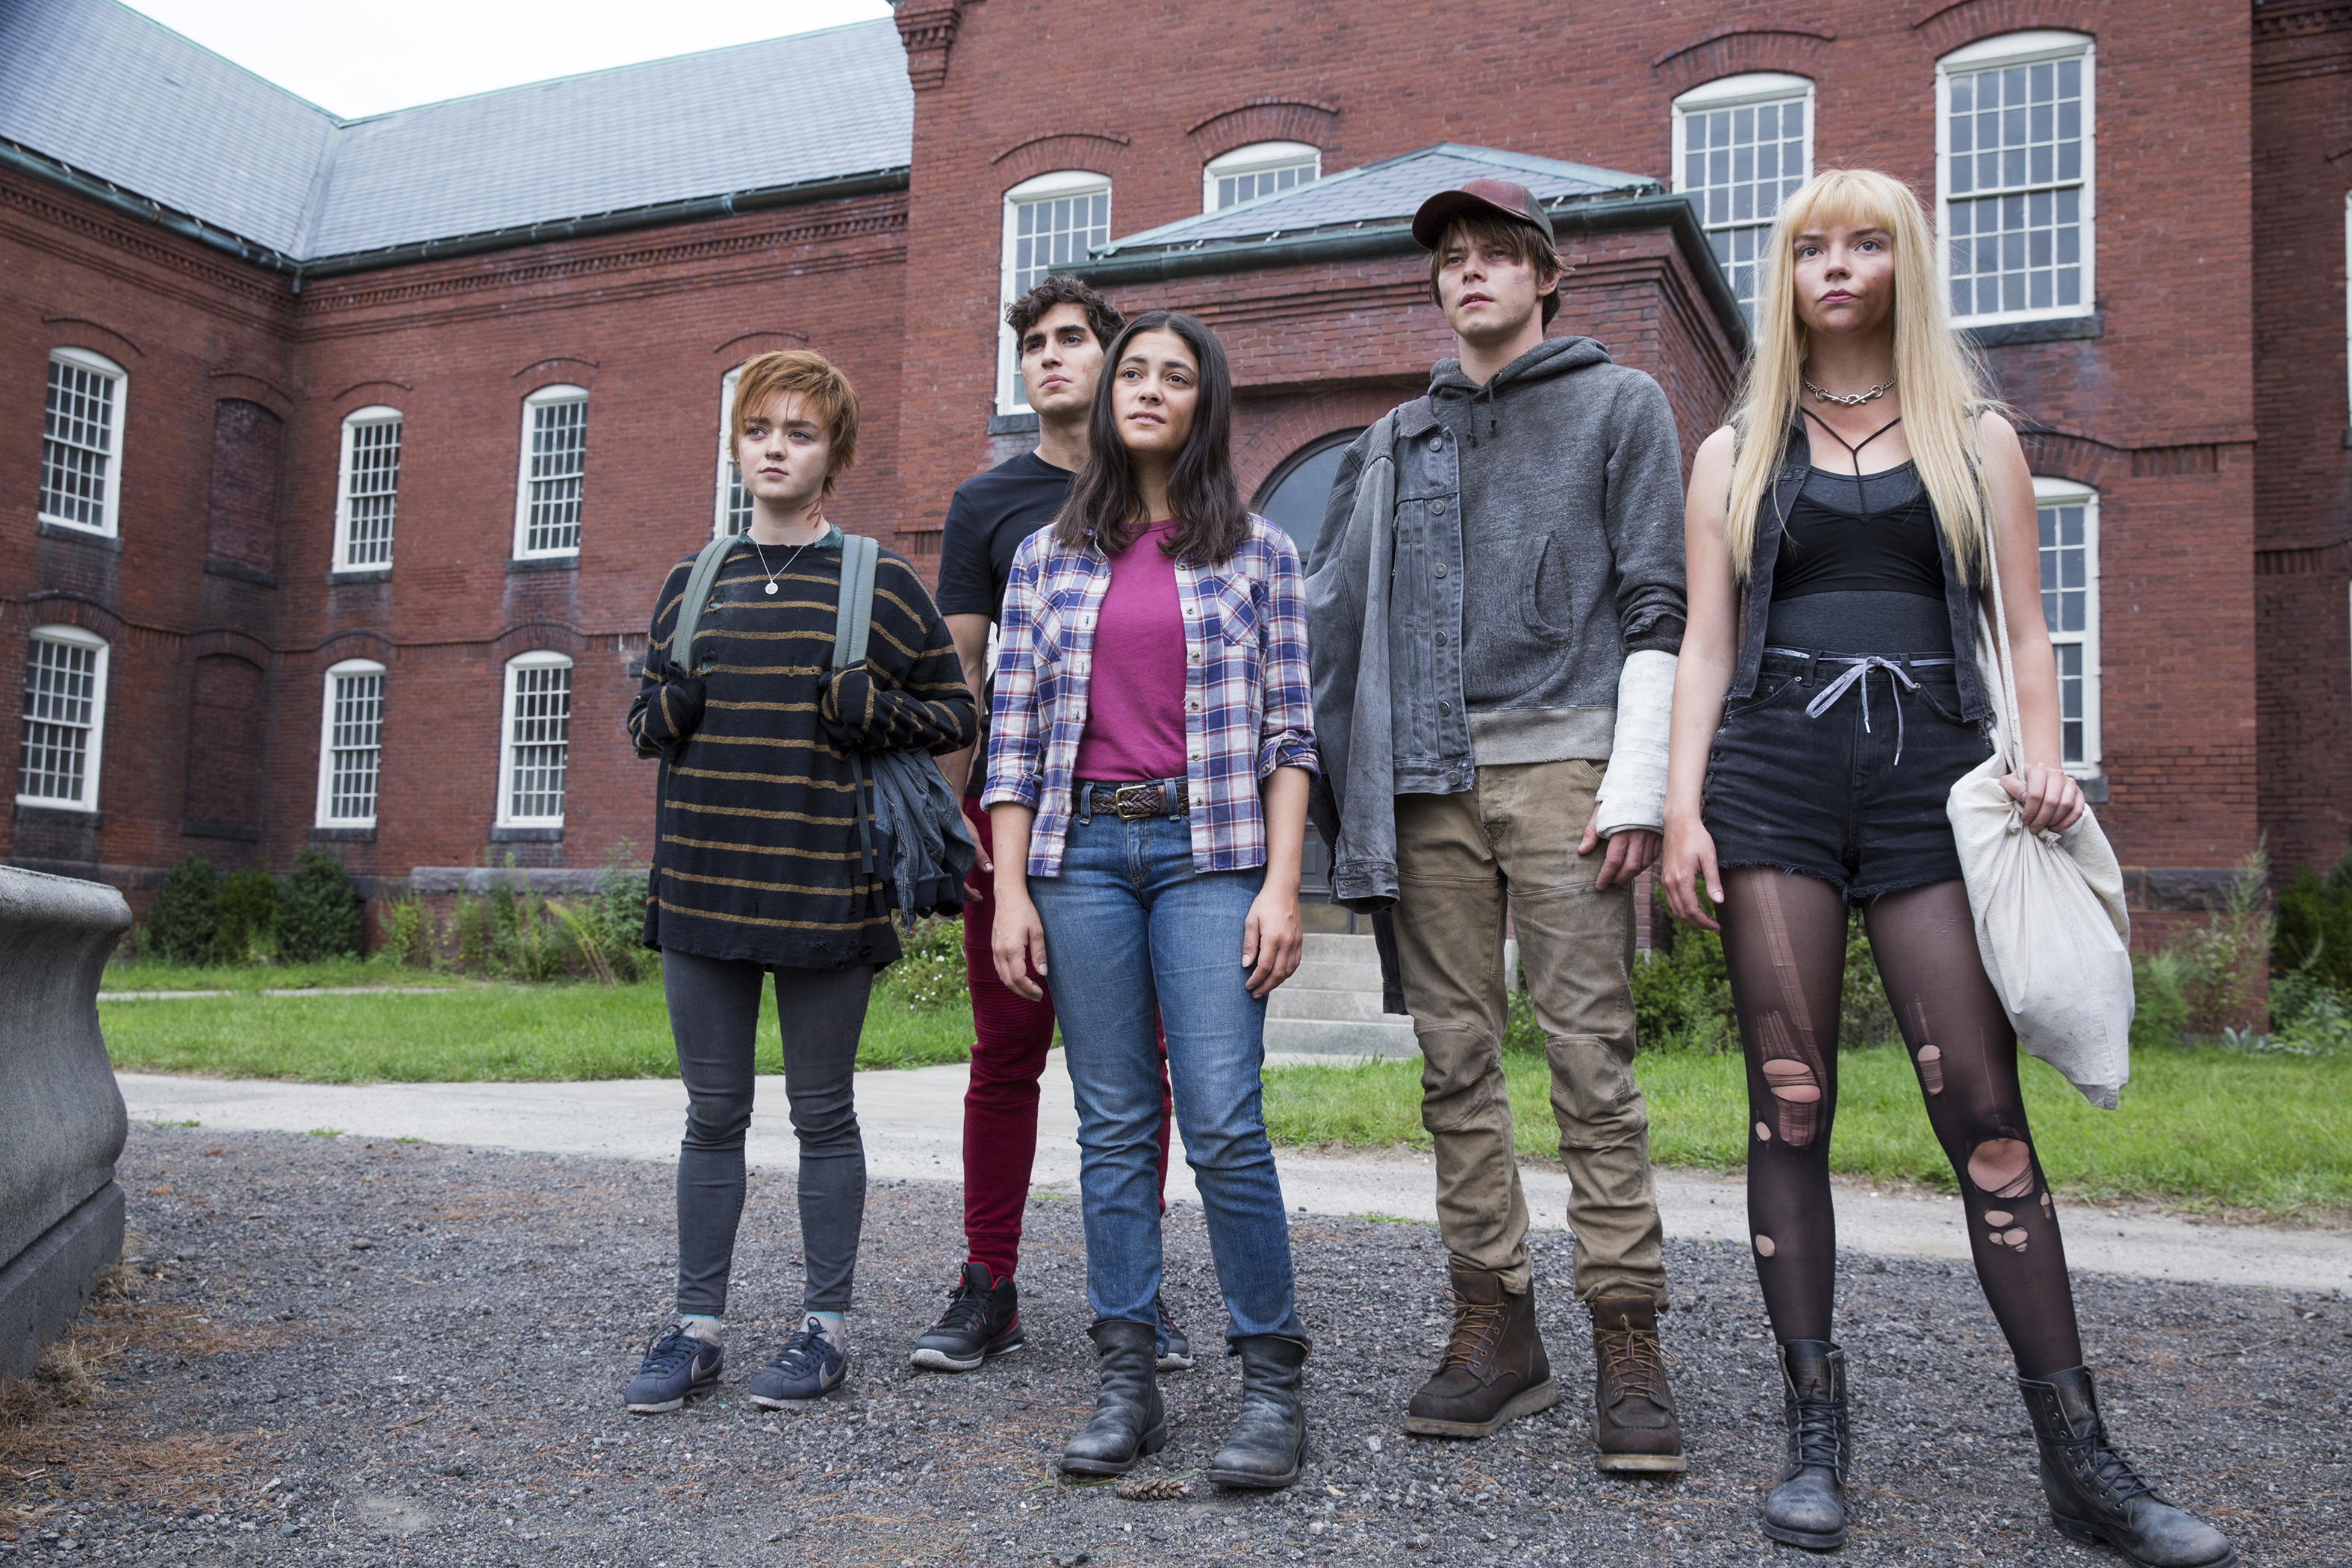 'The New Mutants' finally hits theaters, but without much fanfare (or reviews)